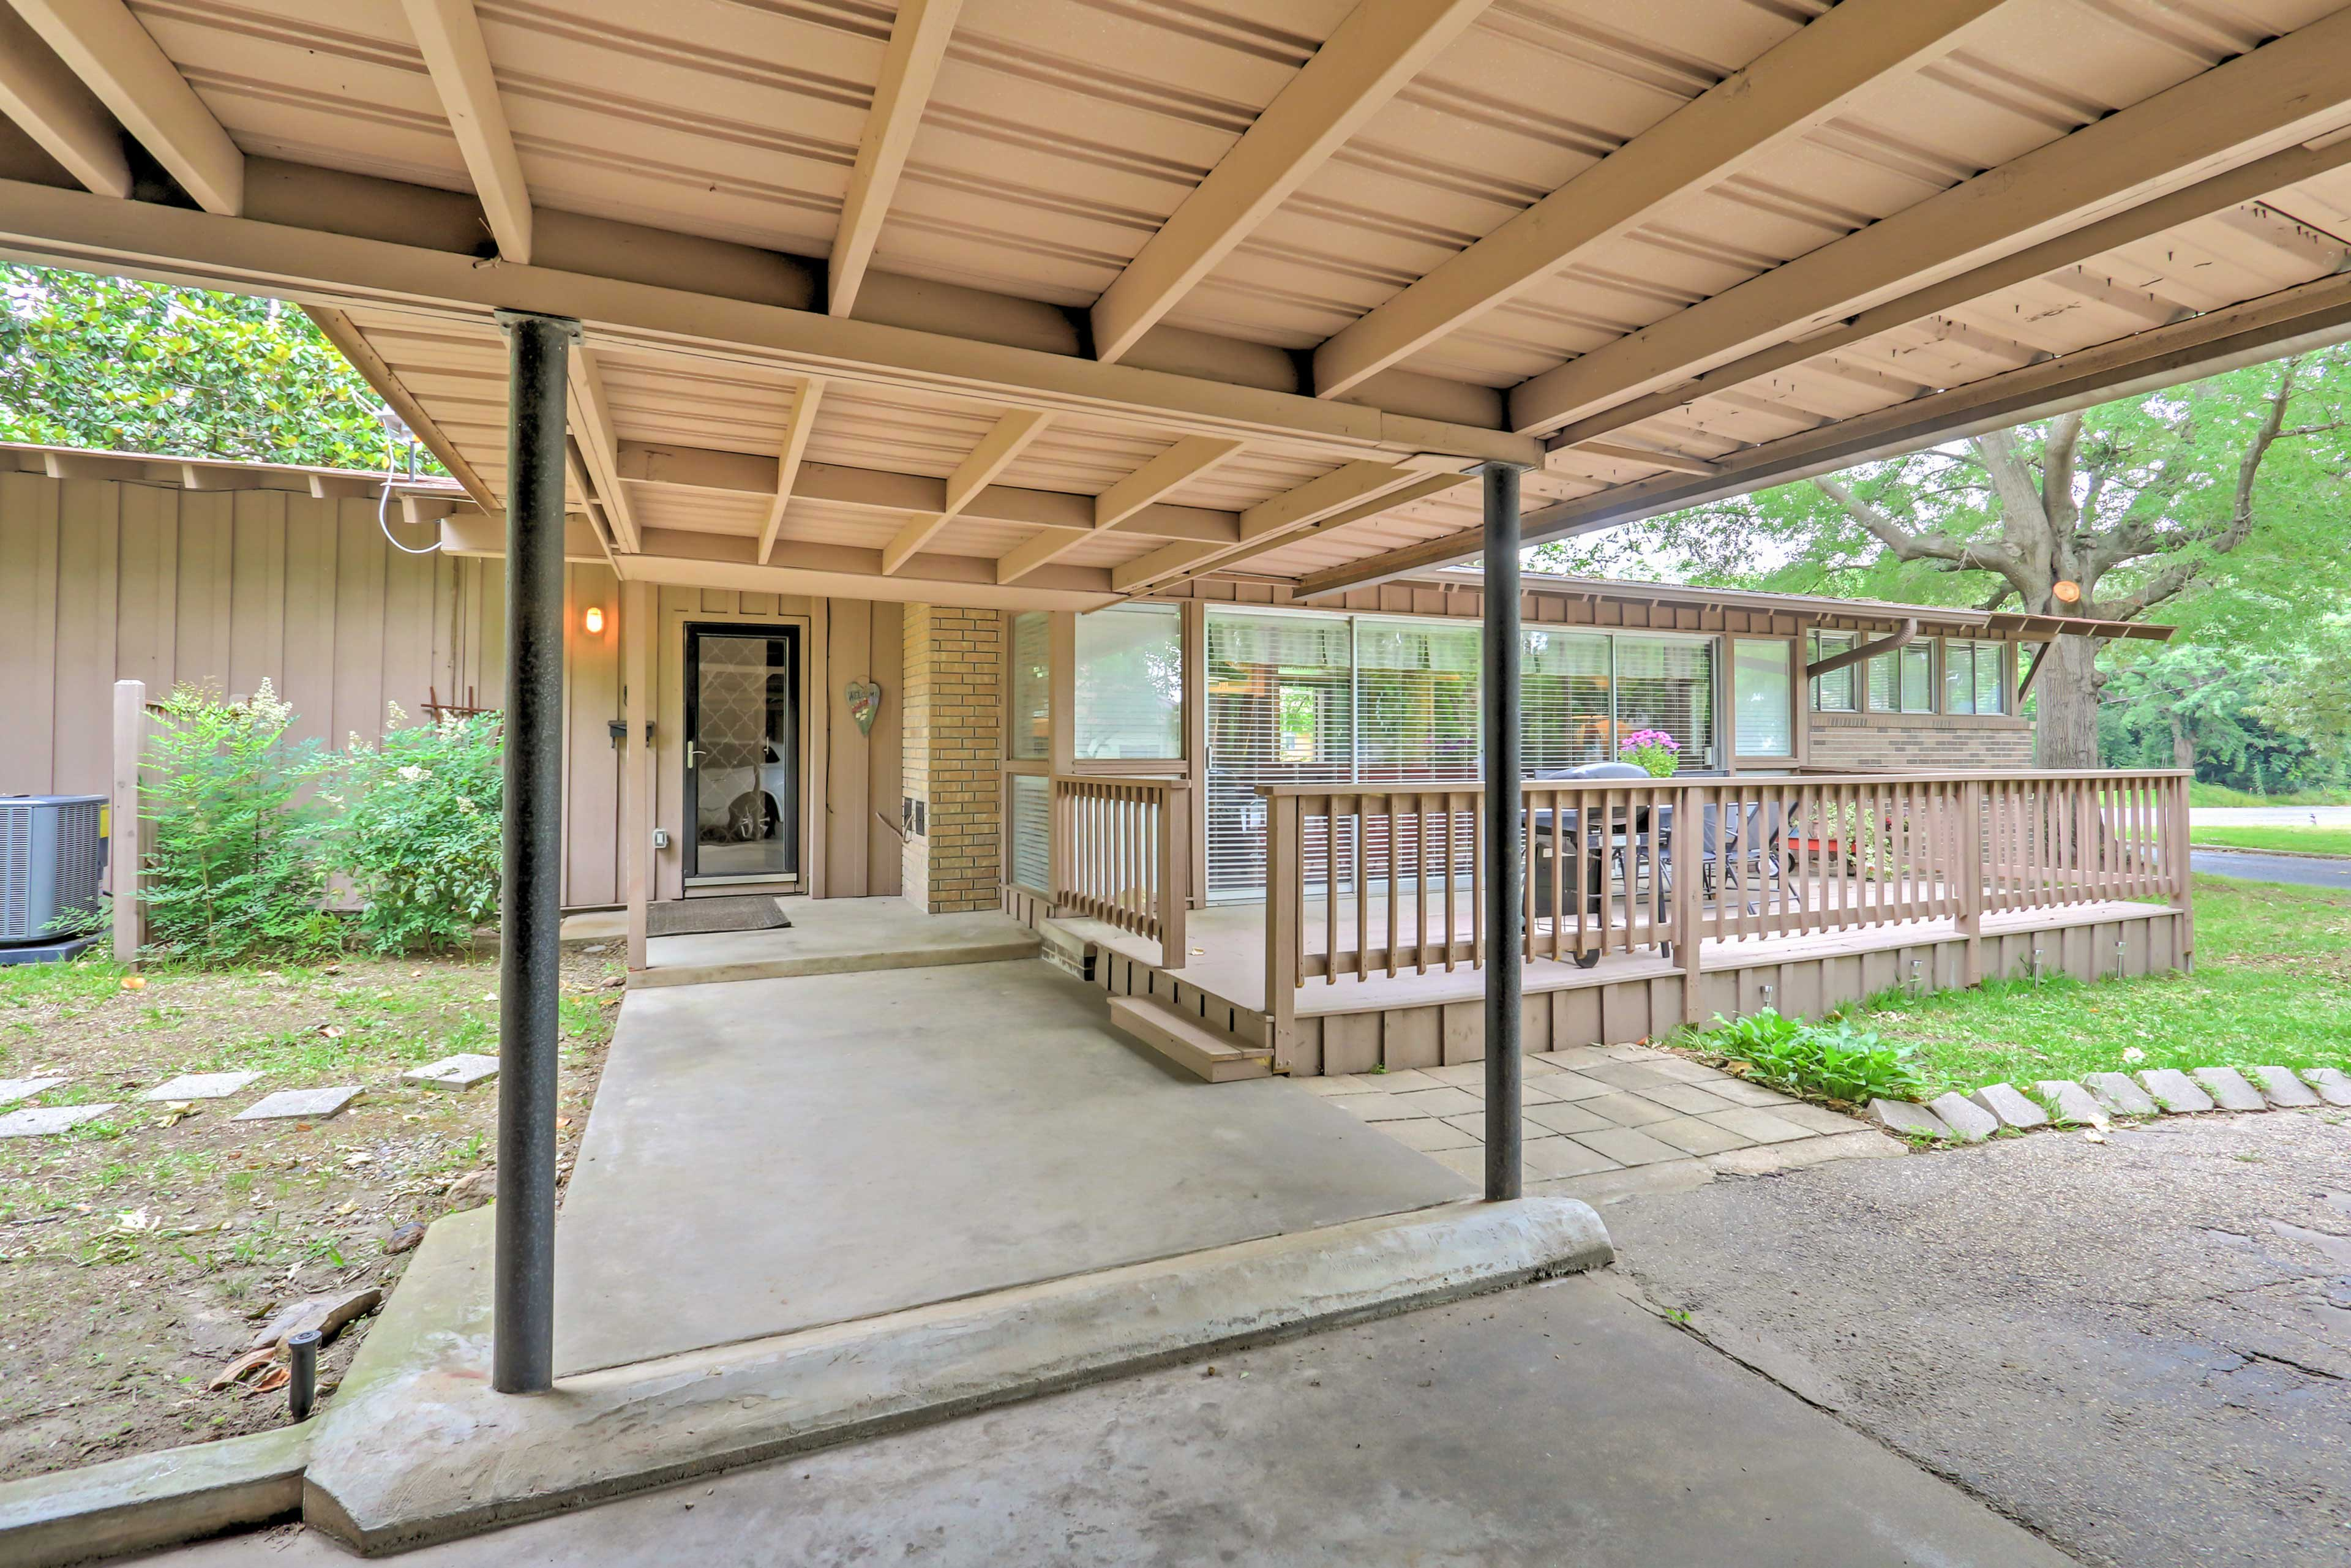 This home is walking distance from Winnsboro's active Main Street area.